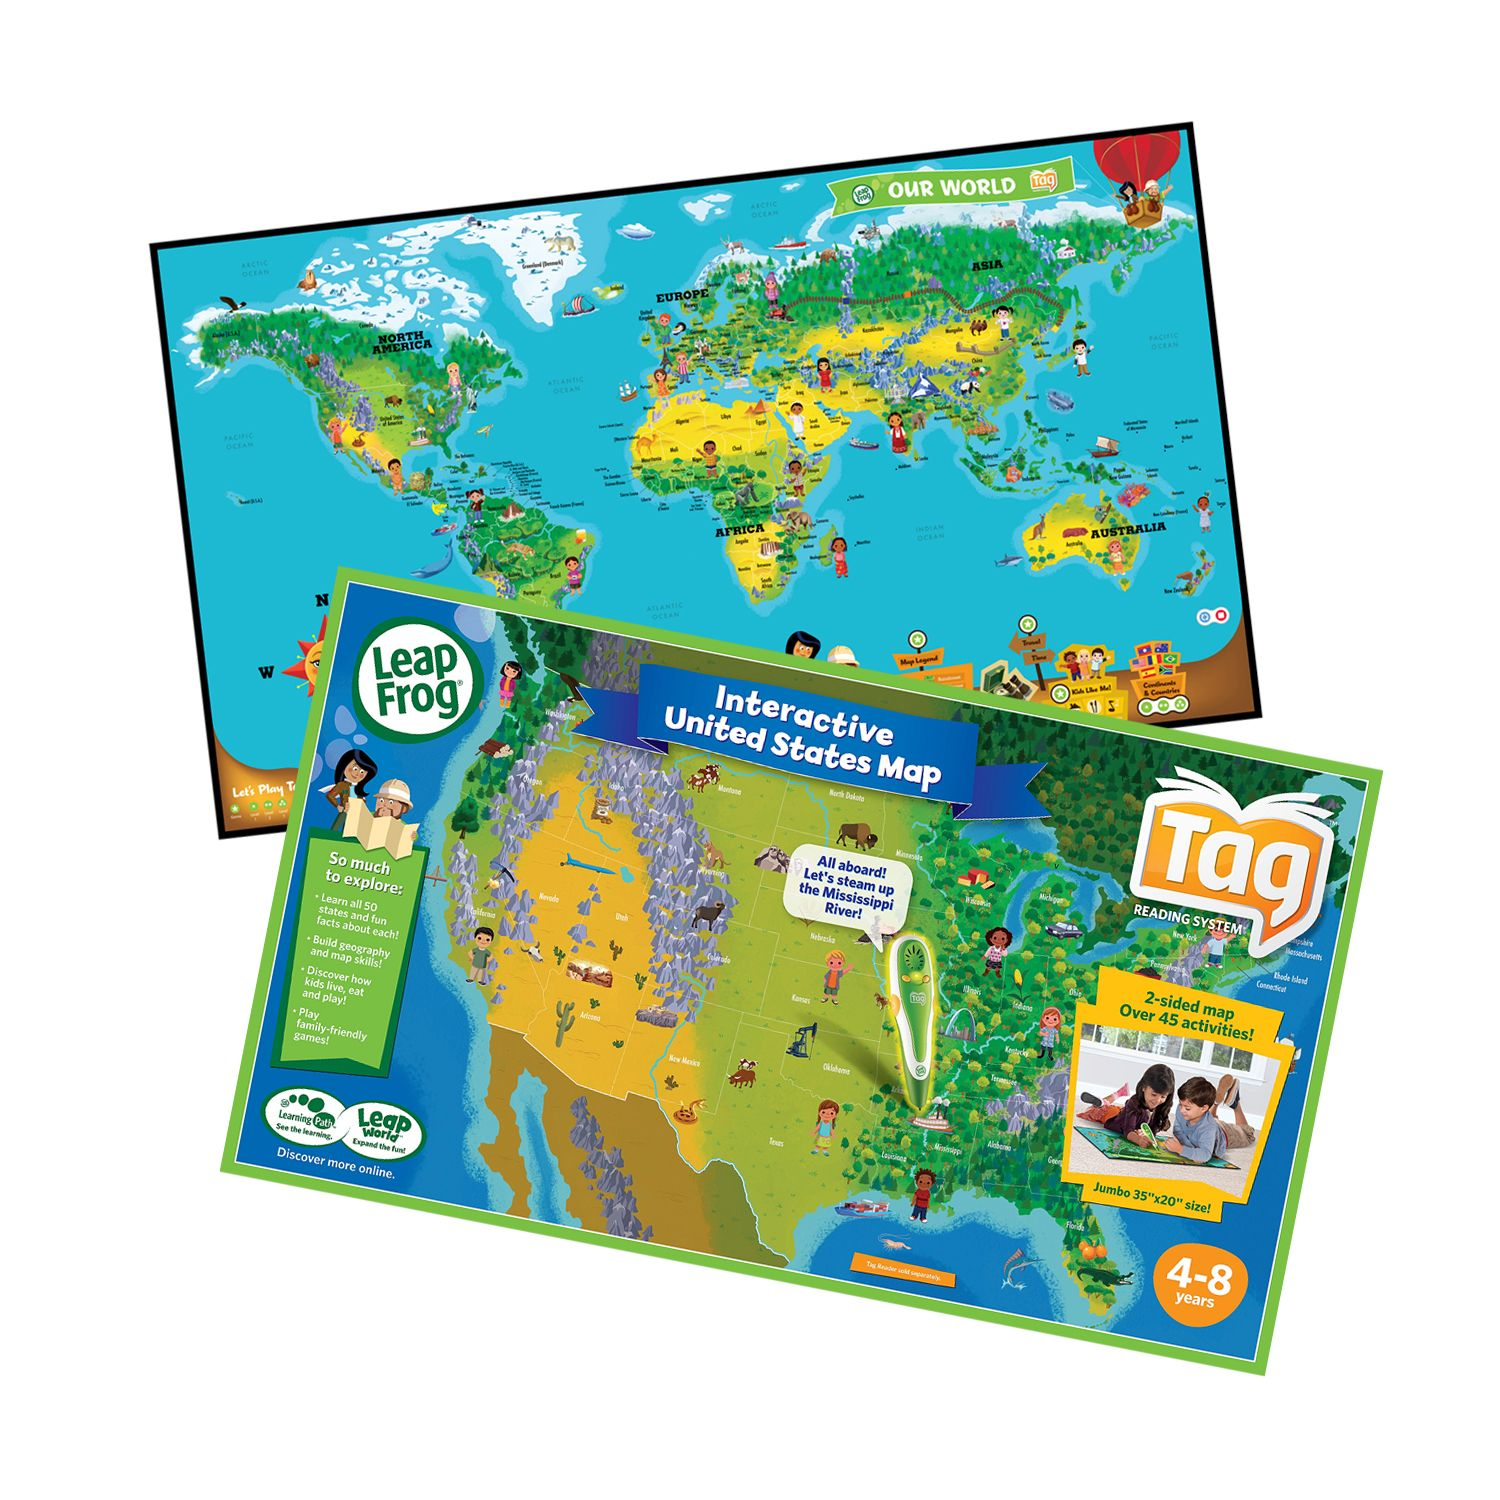 Leapfrog tag interactive maps bundle sams club zoom pan gumiabroncs Image collections